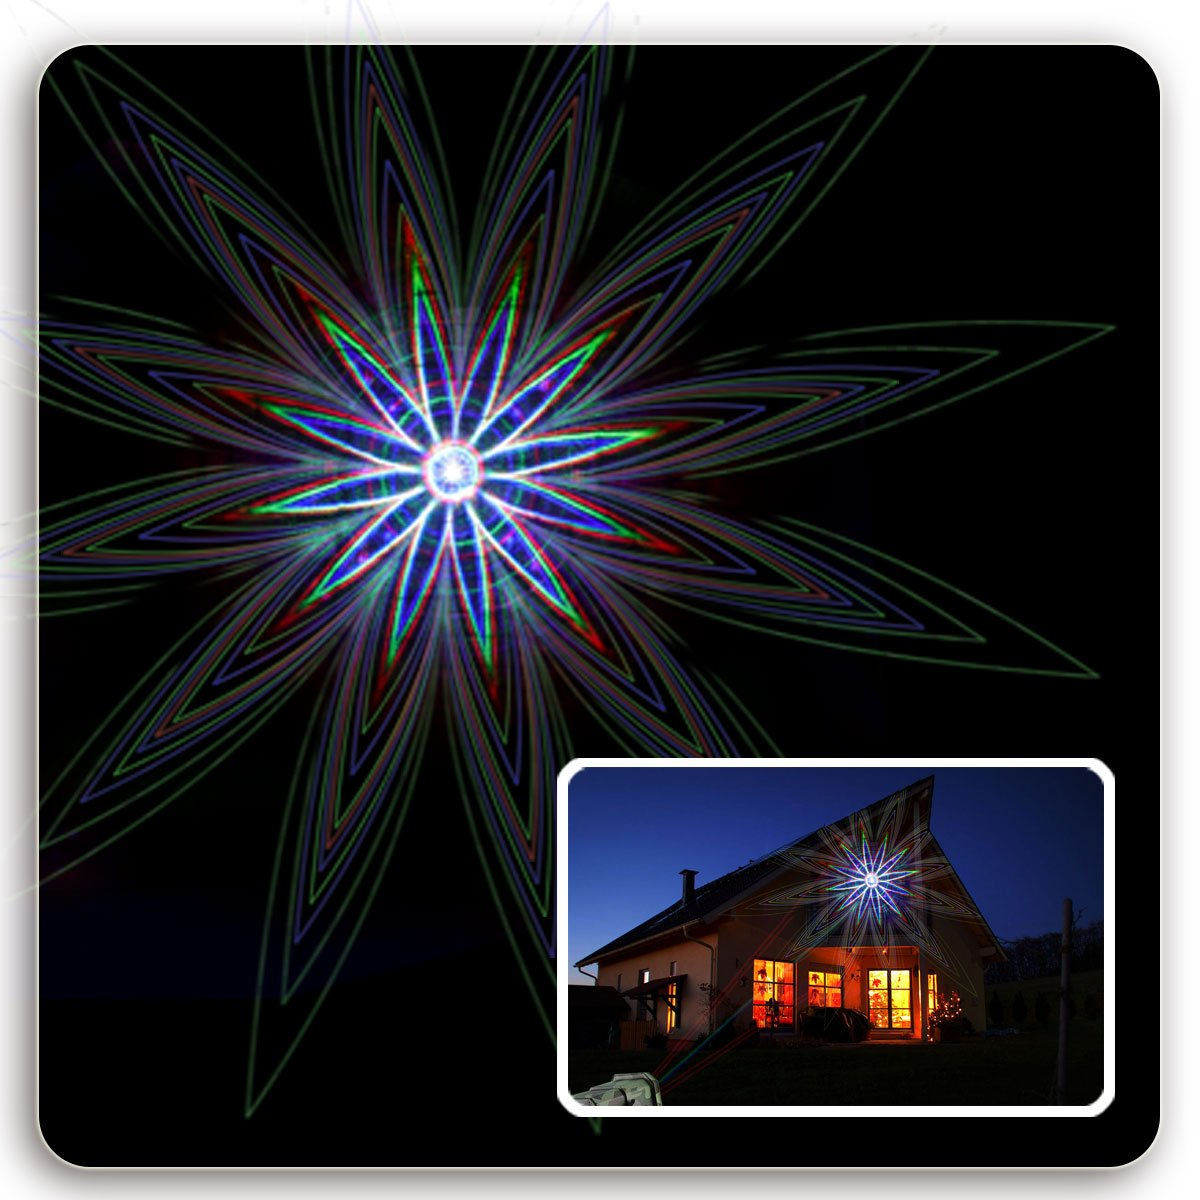 EVA Logik Outdoor Waterproof Laser Projector Light, Moving RGB 20 Patterns, with RF Remote Control & Timer, Perfect for Lawn, Party, Garden Decoration by Eva logik (Image #6)